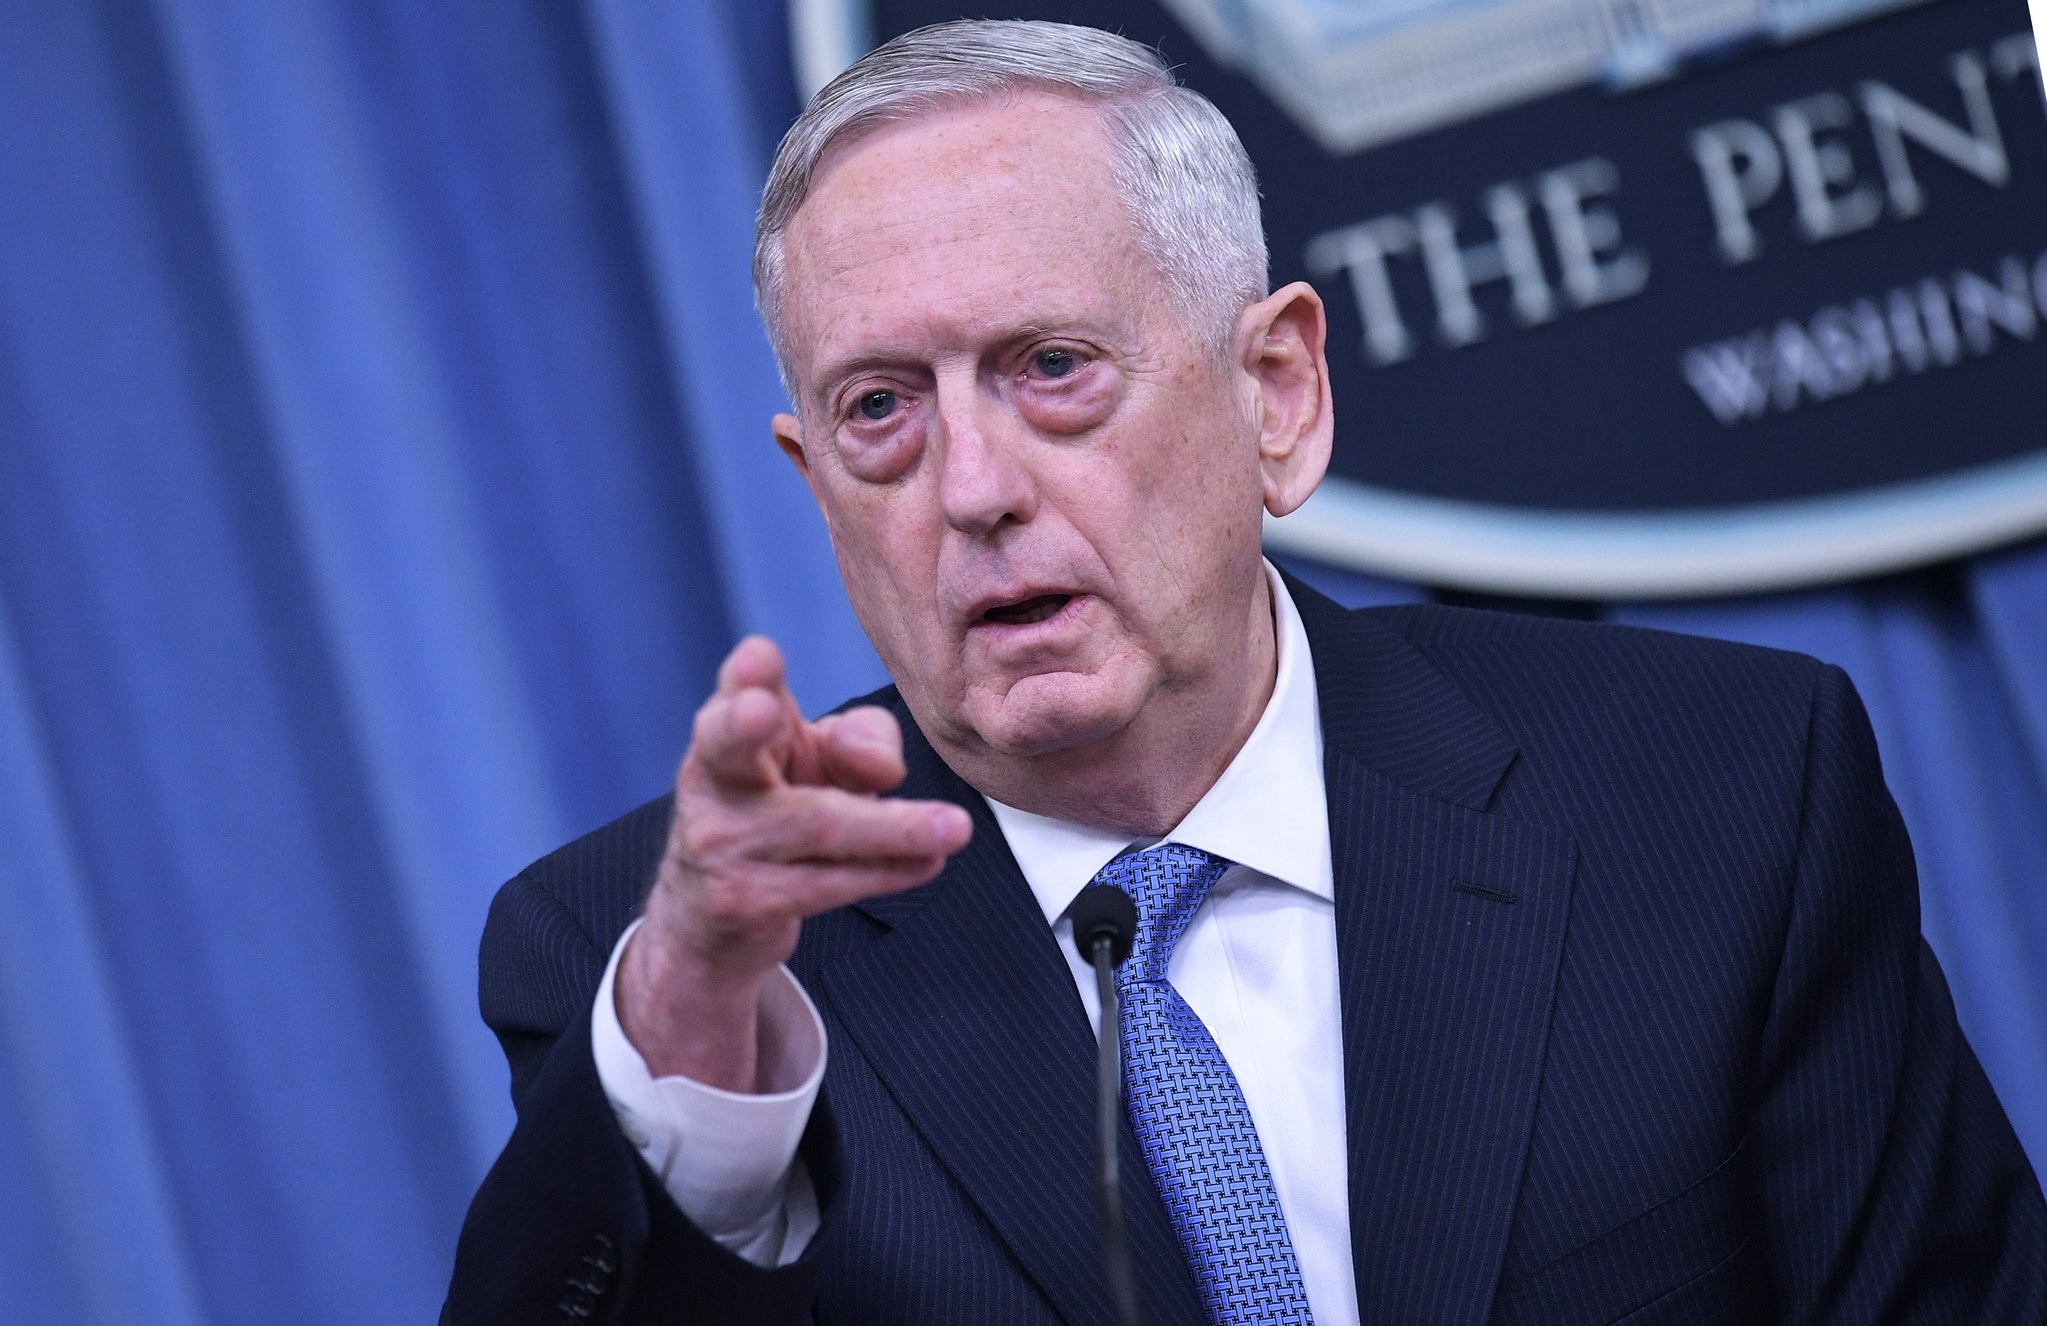 US Secretary of Defense Mattis takes questions during a briefing at the Pentagon in Washington, DC on April 11, 2017. (AFP Photo)